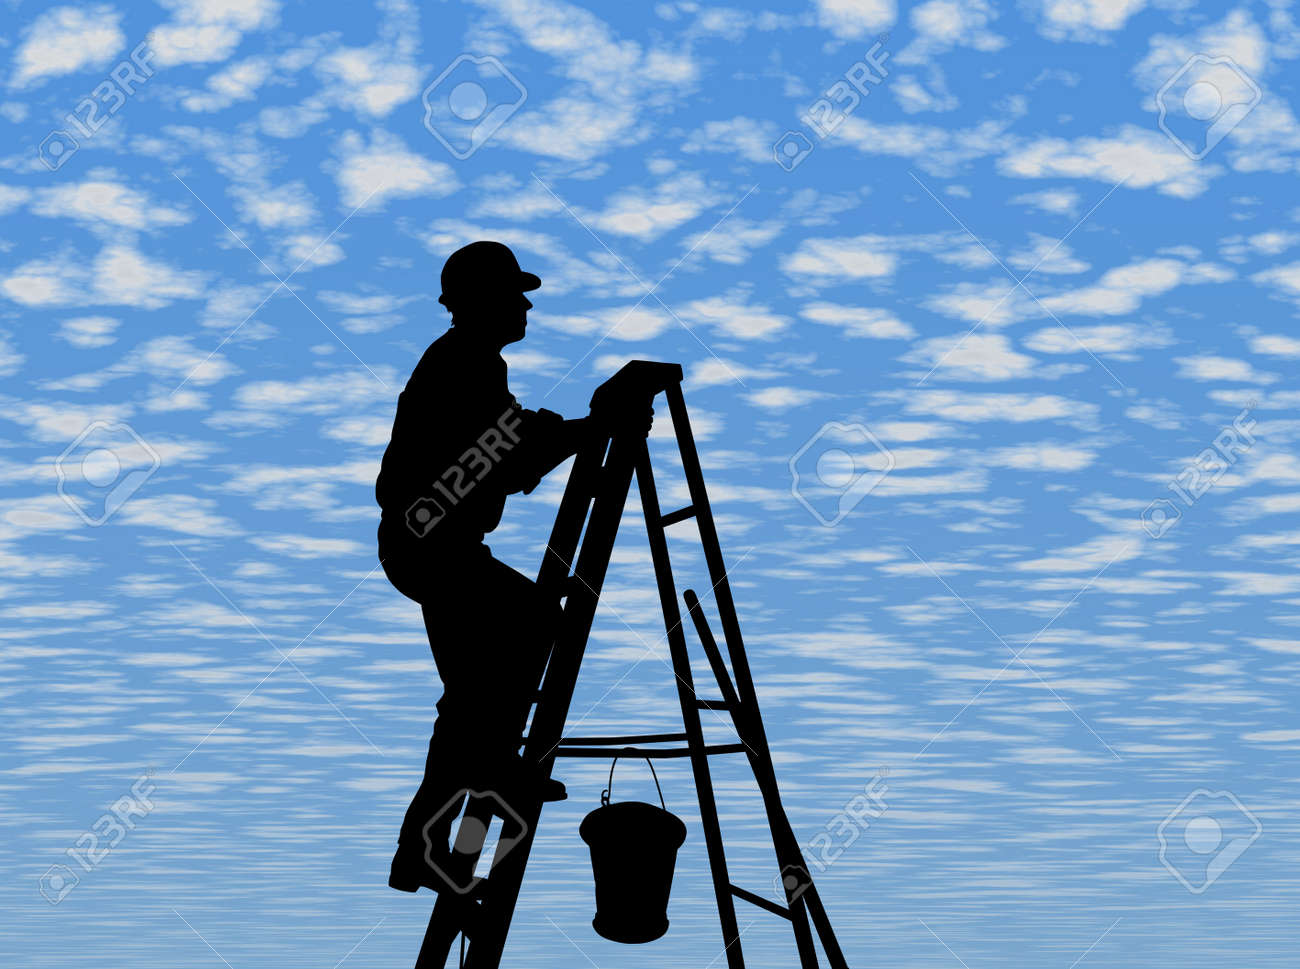 MAN AT WORK - SILHOUETTE - Dark image outlined against a fluffy clouds background Stock Photo - 792267